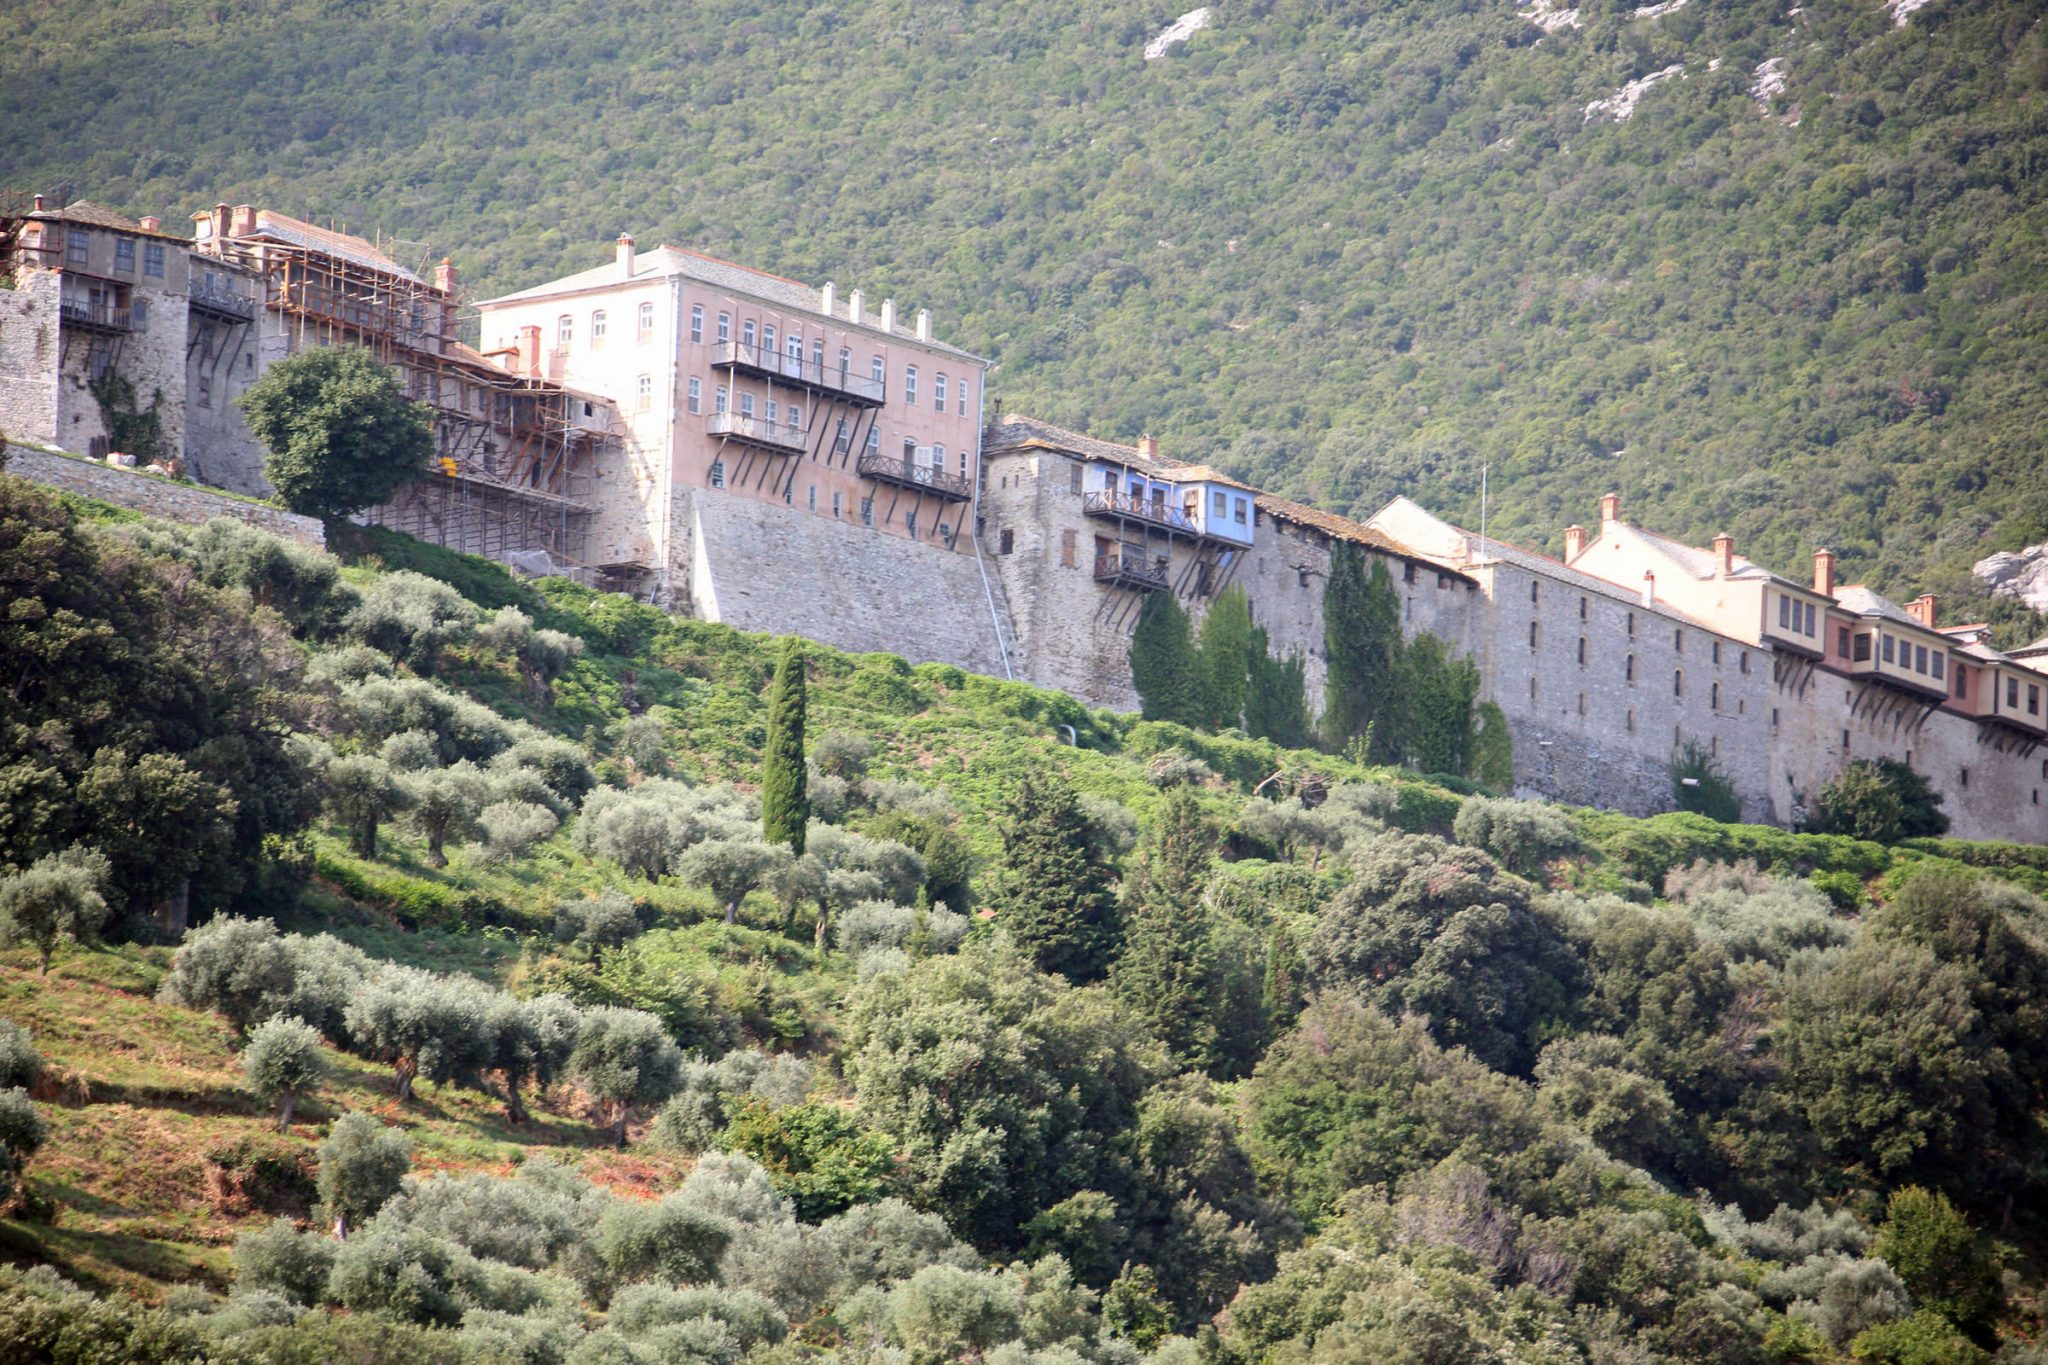 The Holy Monastery of the Great Lavra, Mount Athos